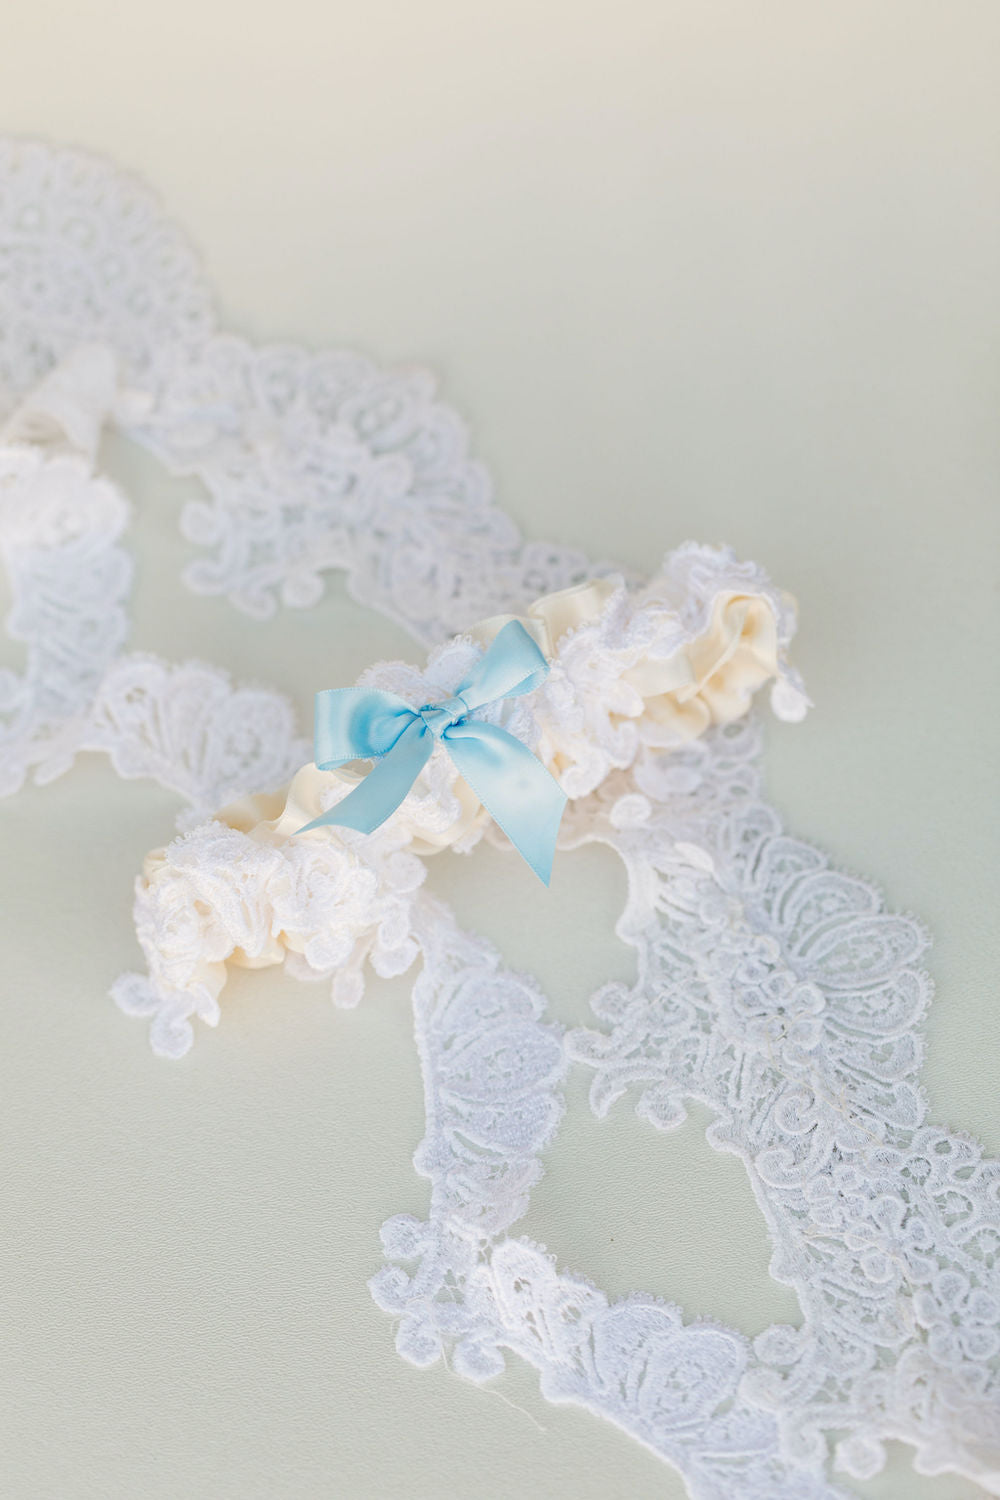 custom wedding garter handmade from bride's mother's wedding dress by expert garter designer, The Garter Girl